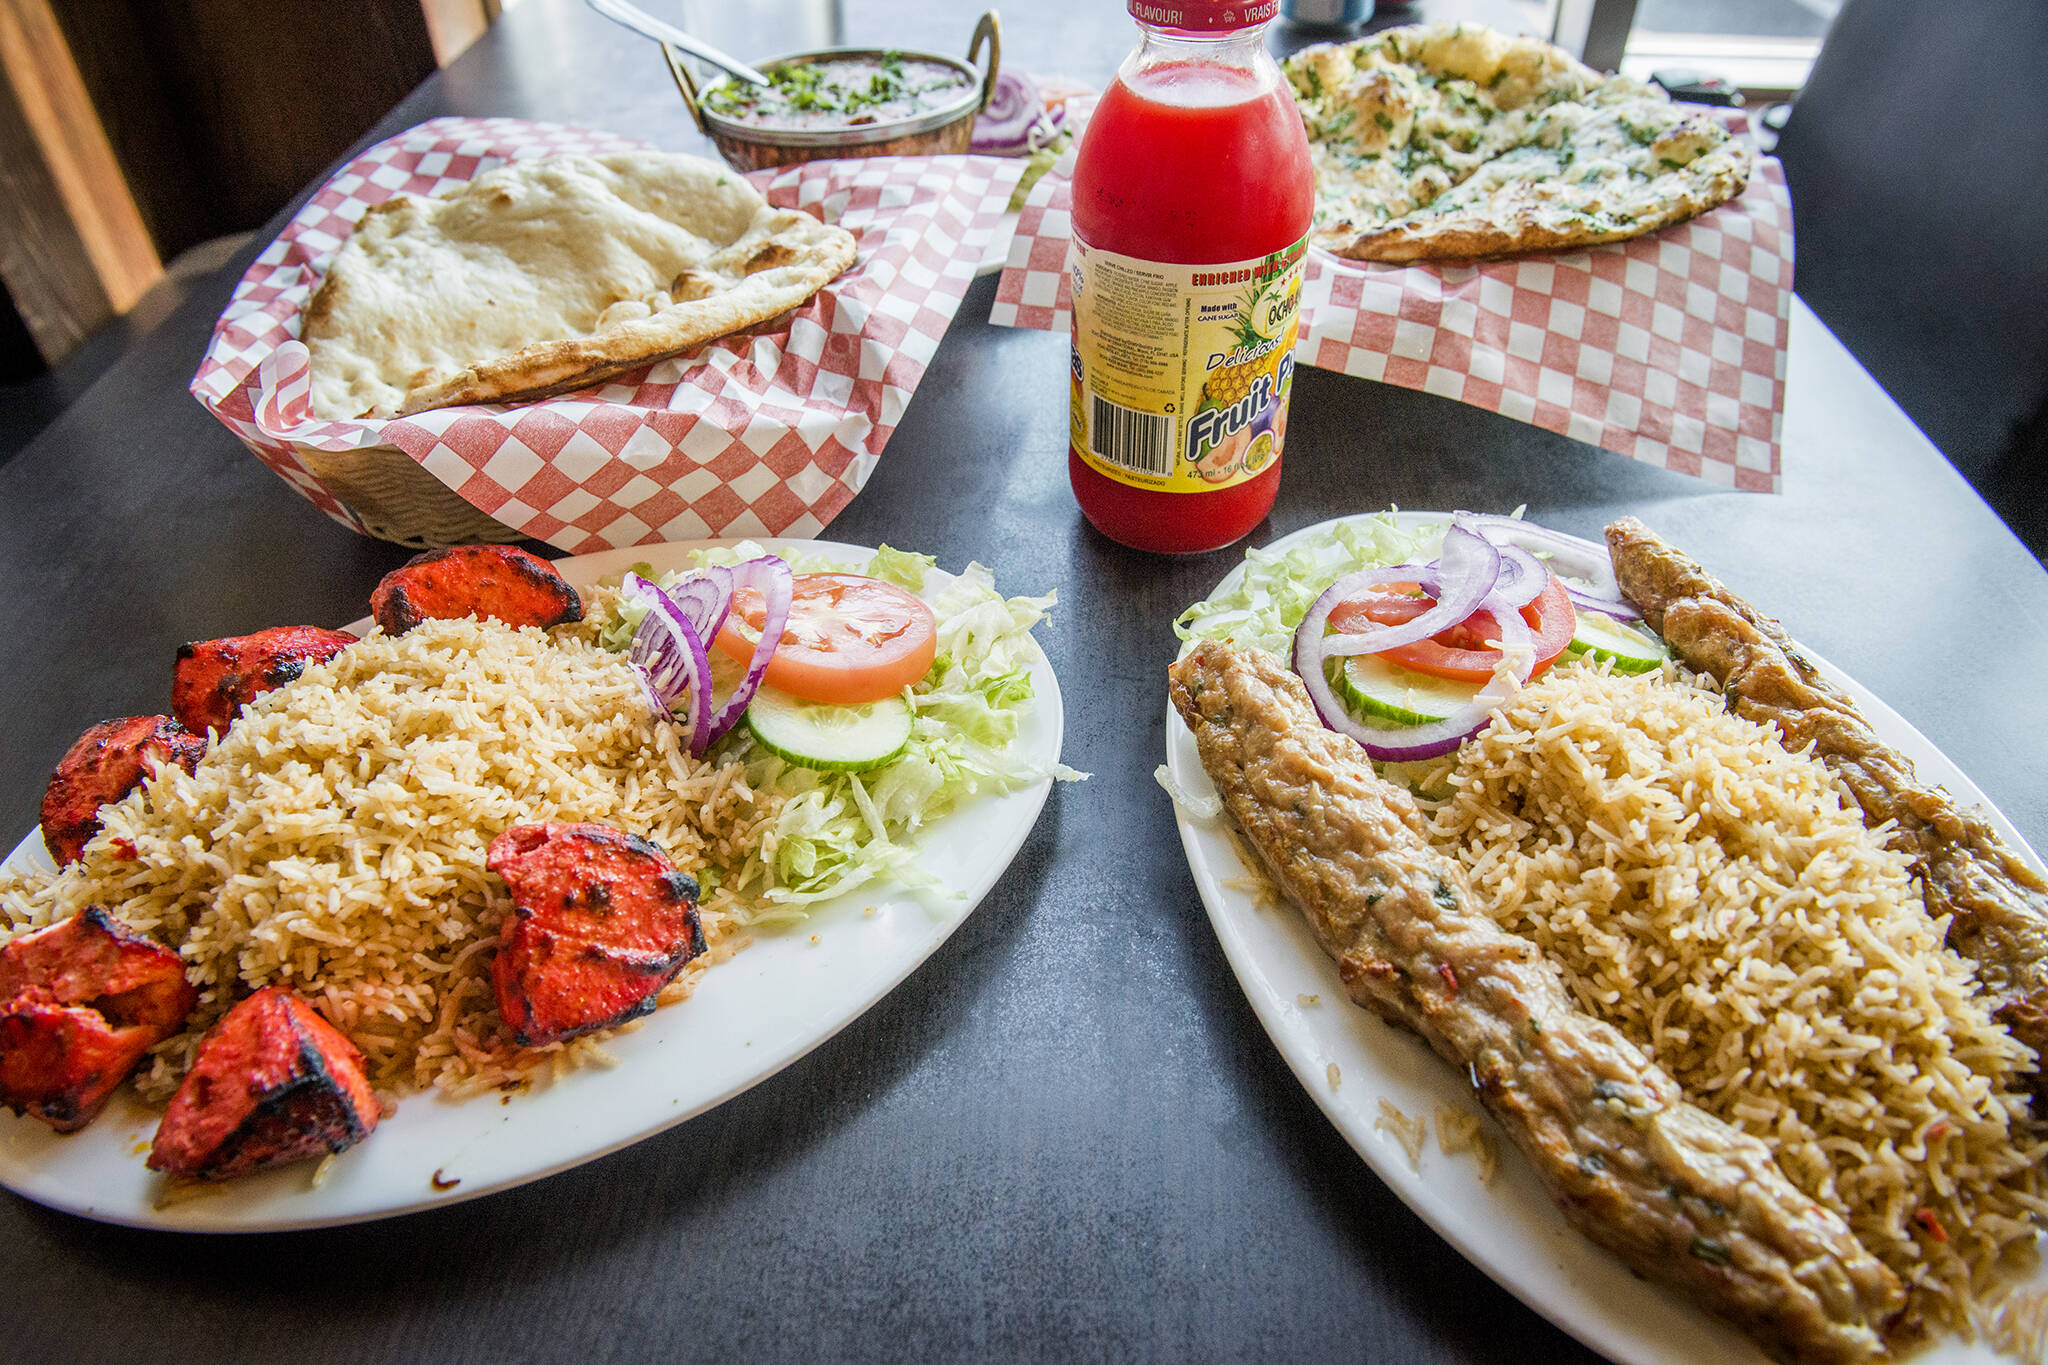 pakistani restaurants toronto